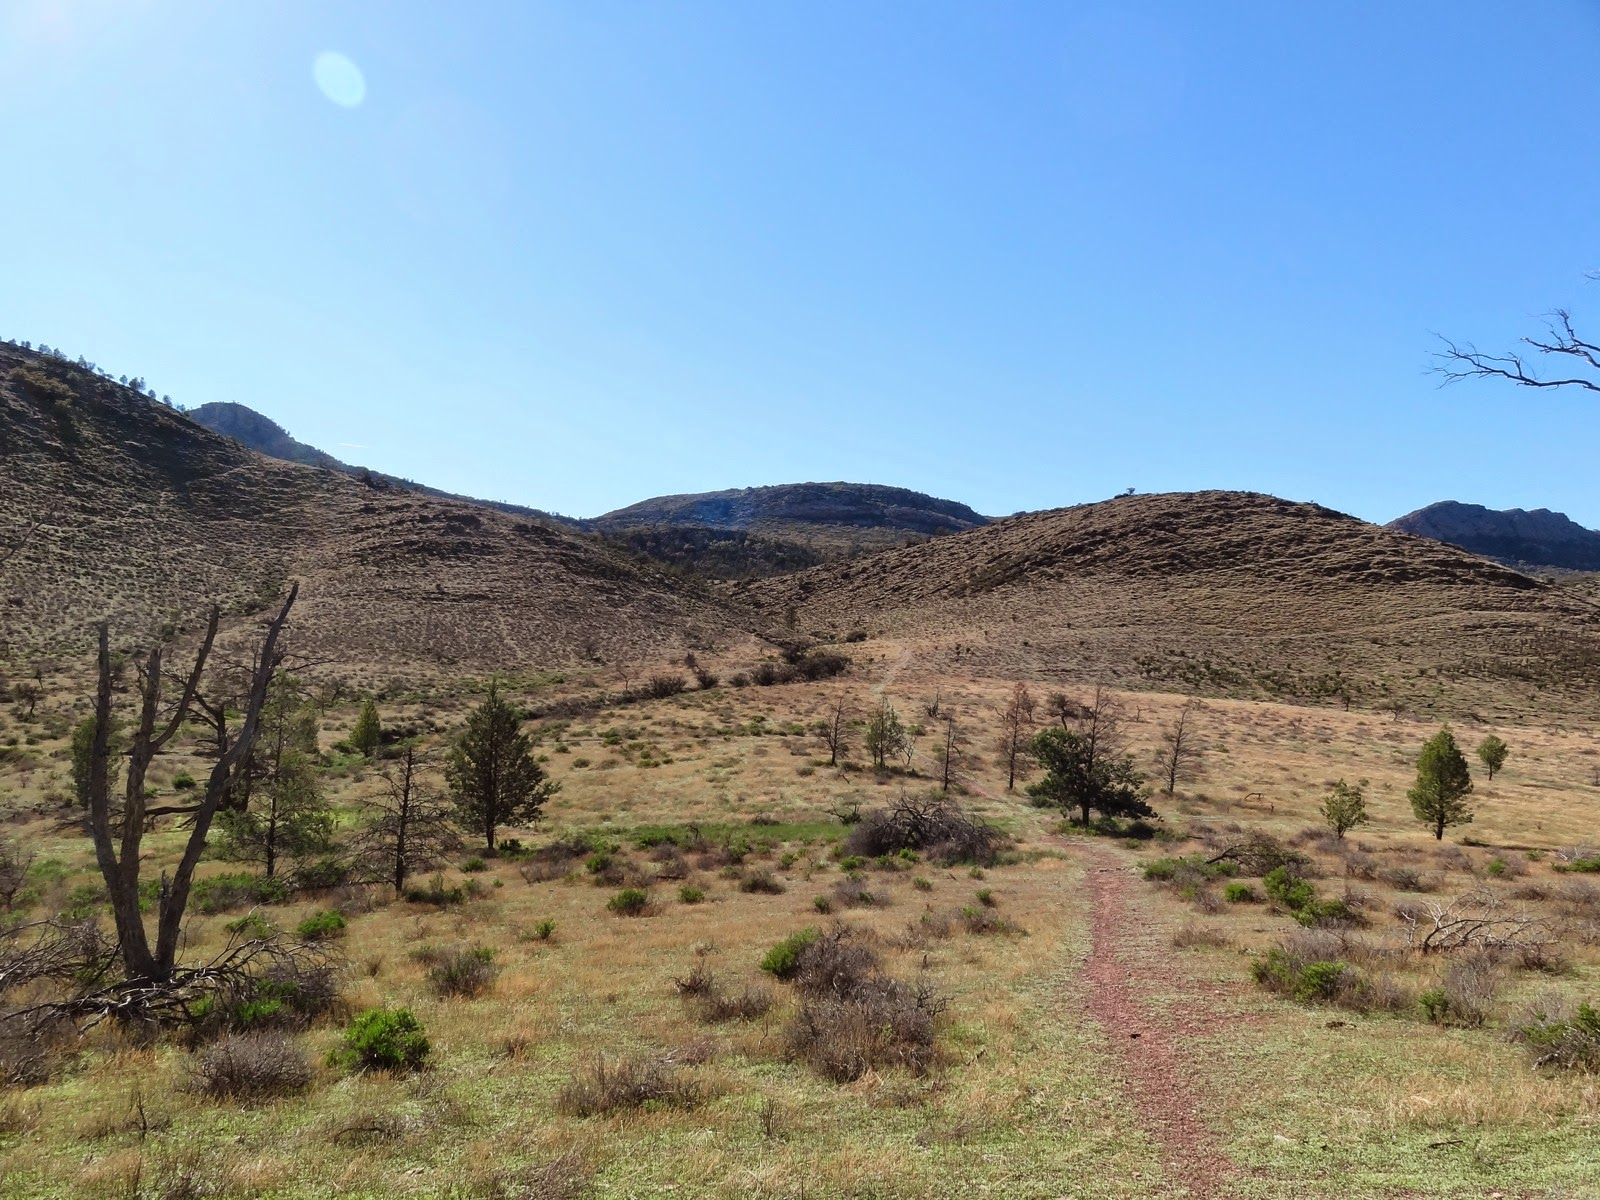 Black gap lookout walk. Only a 2km from the inside wall of Wilpena Pound where I was yesterday